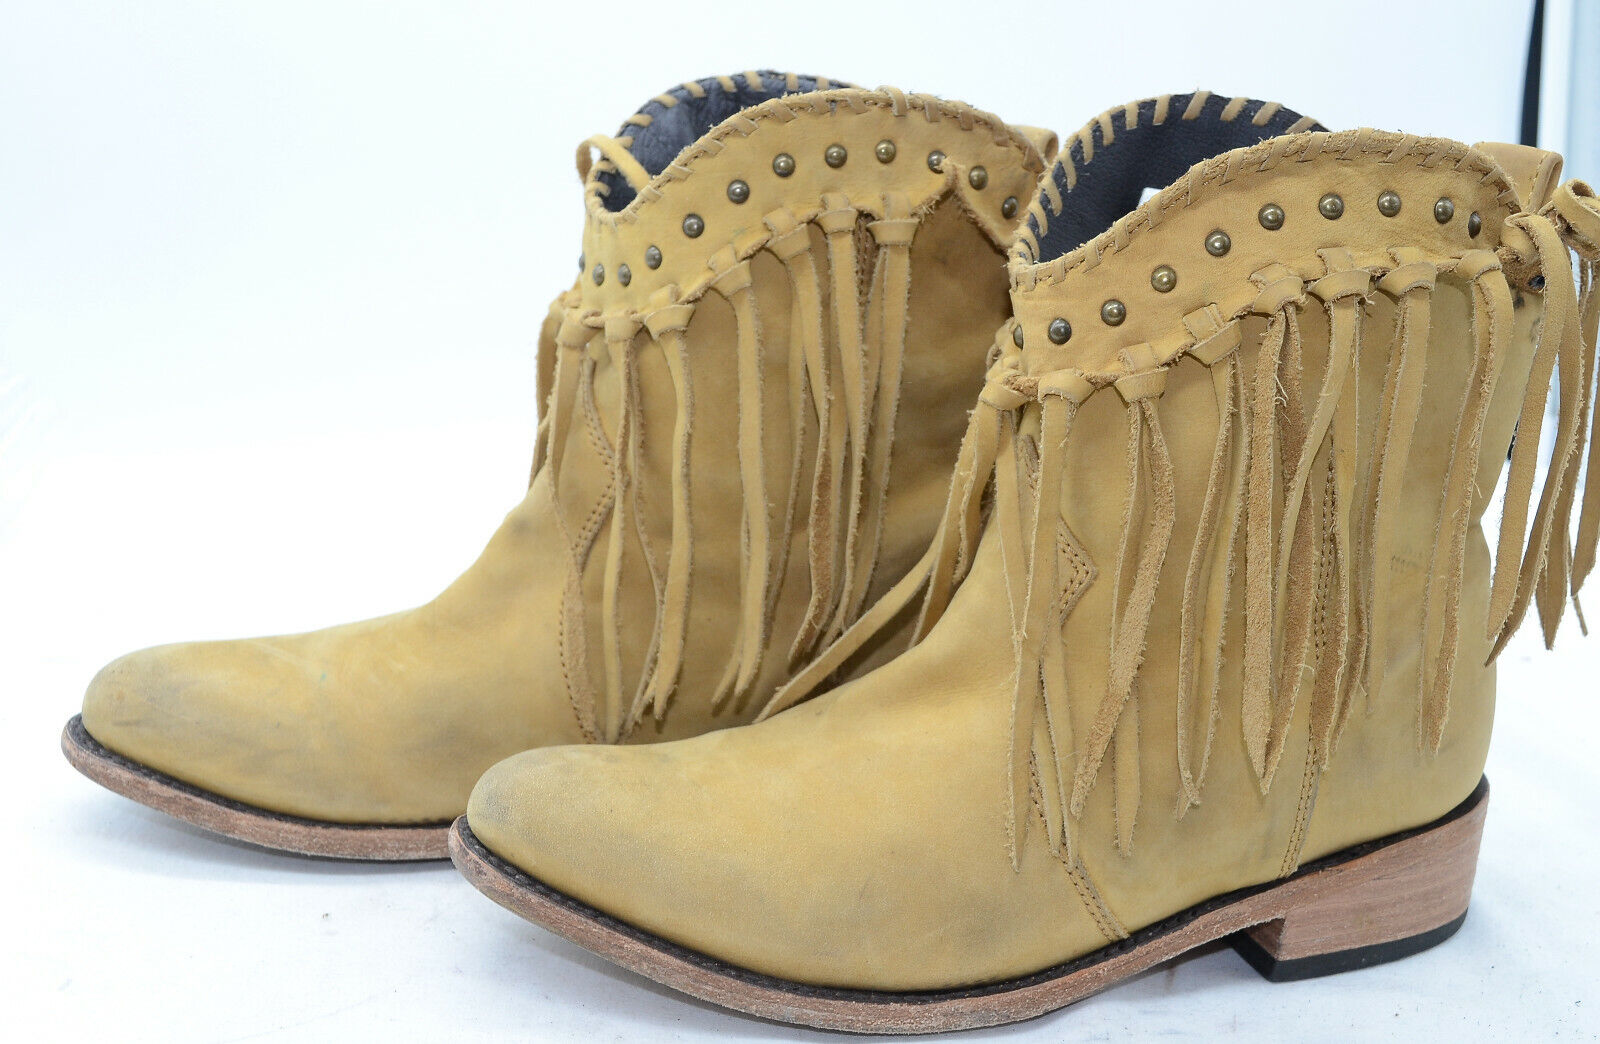 Vtg Fringed Studded Leather Tan Western Riding Ankle Boots Womens Sz 8